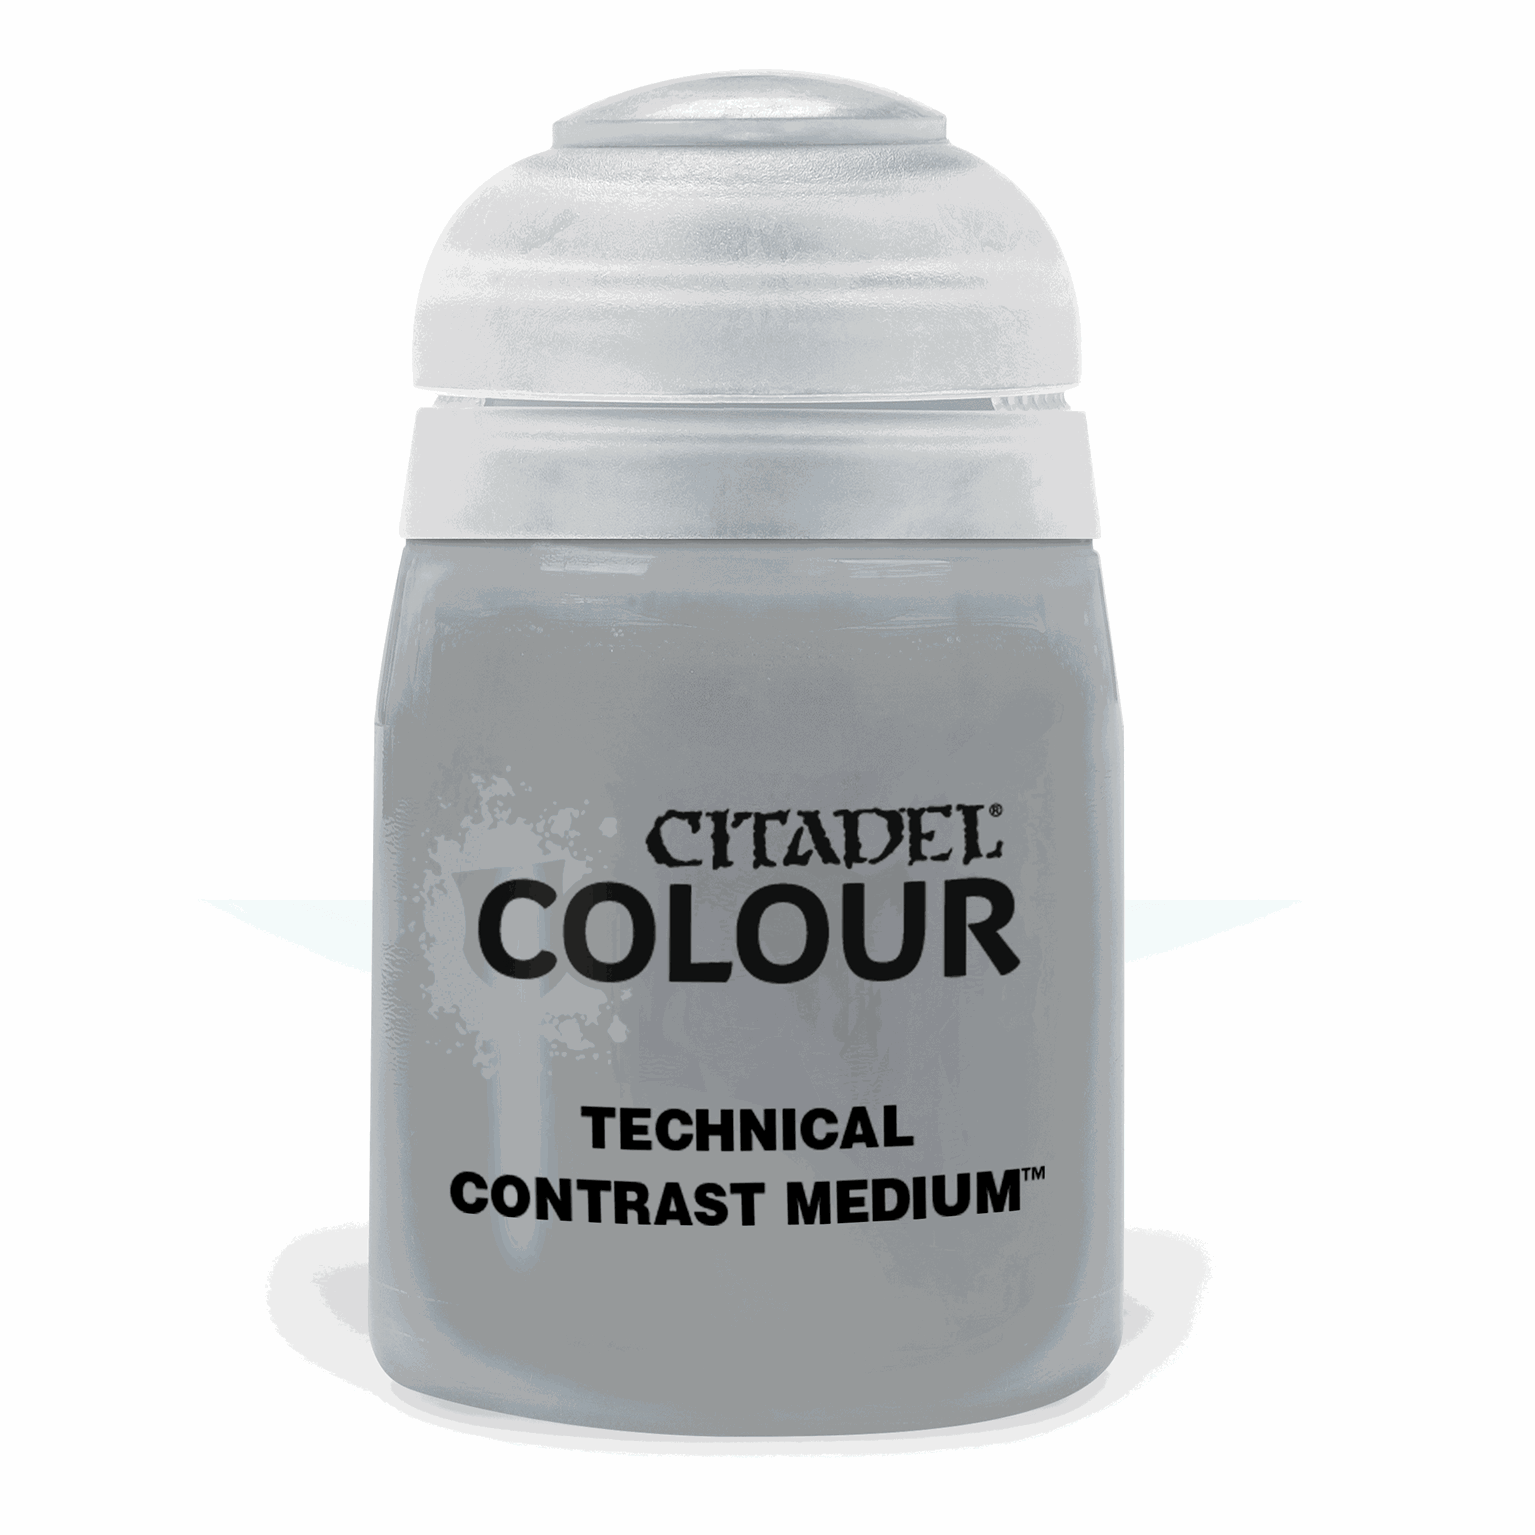 CITADEL TECHNICAL Contrast Medium PAINT POT